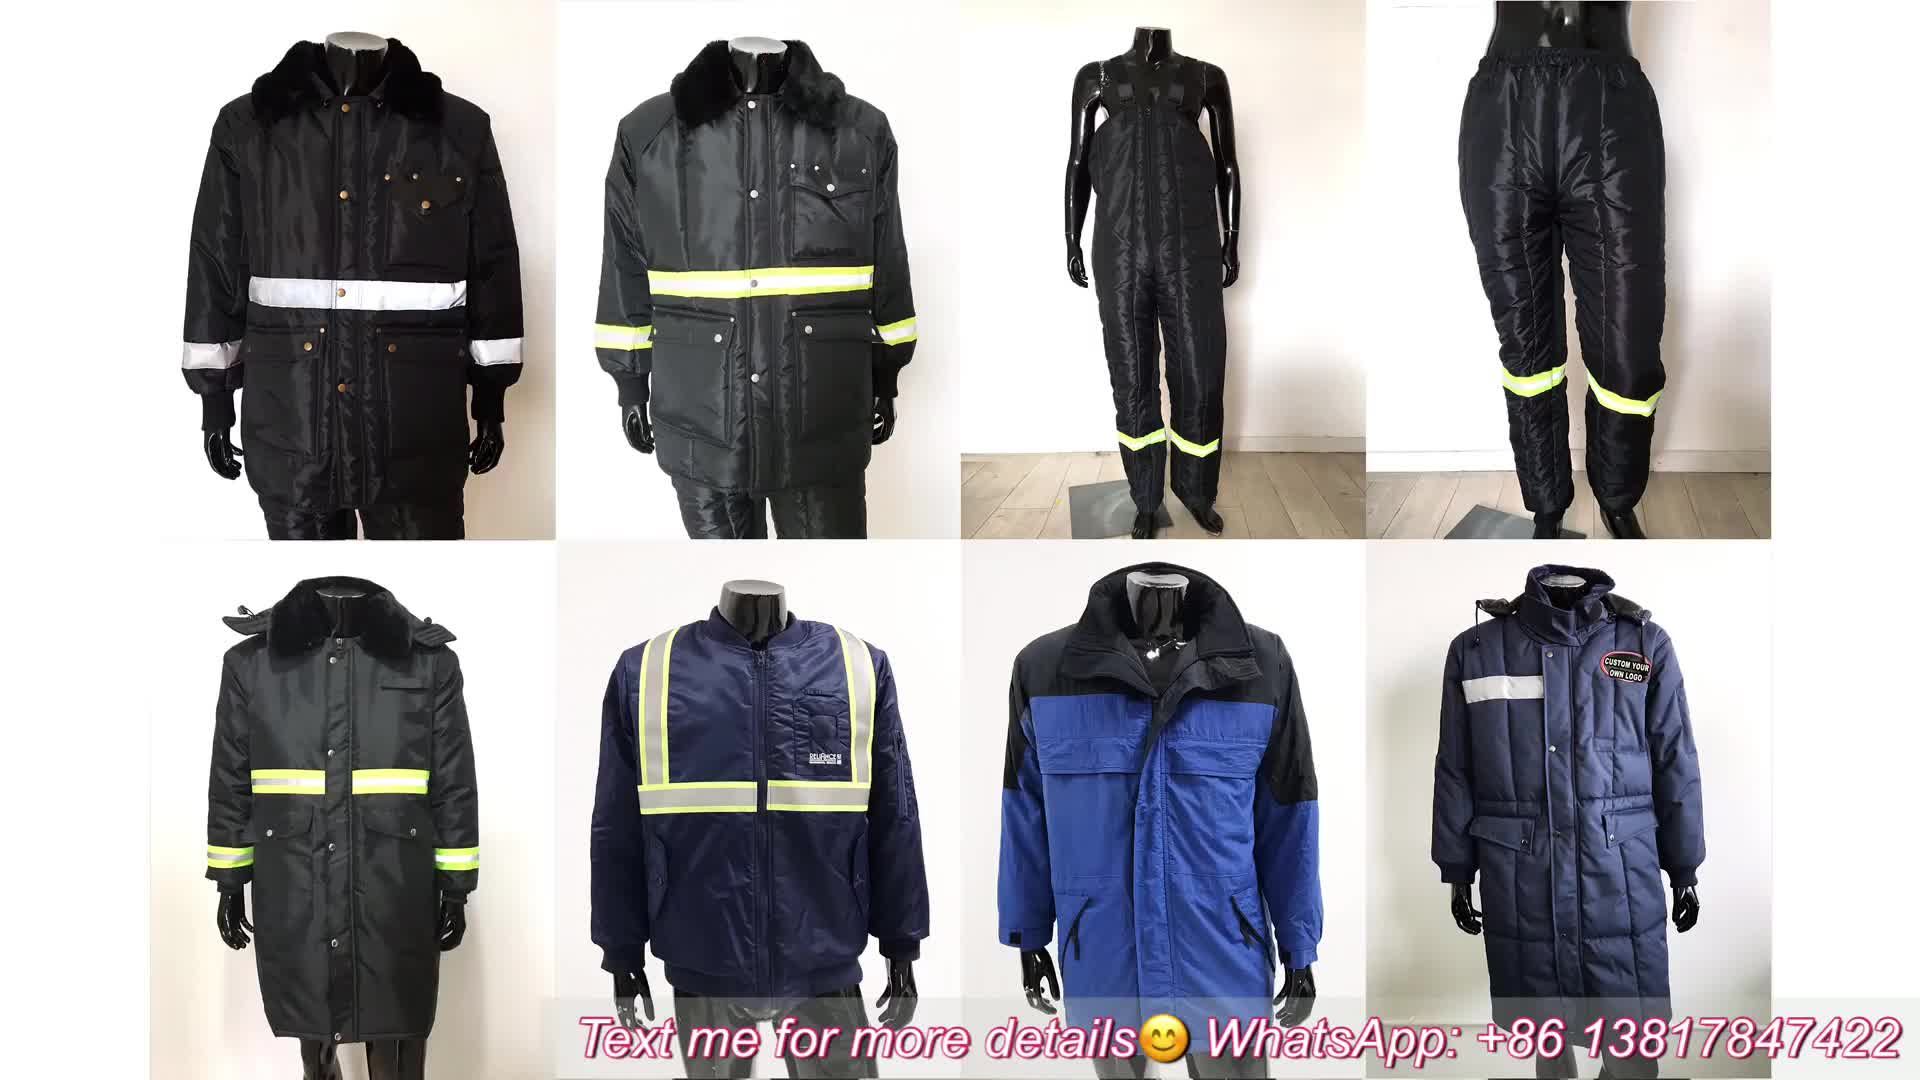 In-Stock & Ready To Ship Reflective Freezer Jacket With Trouser